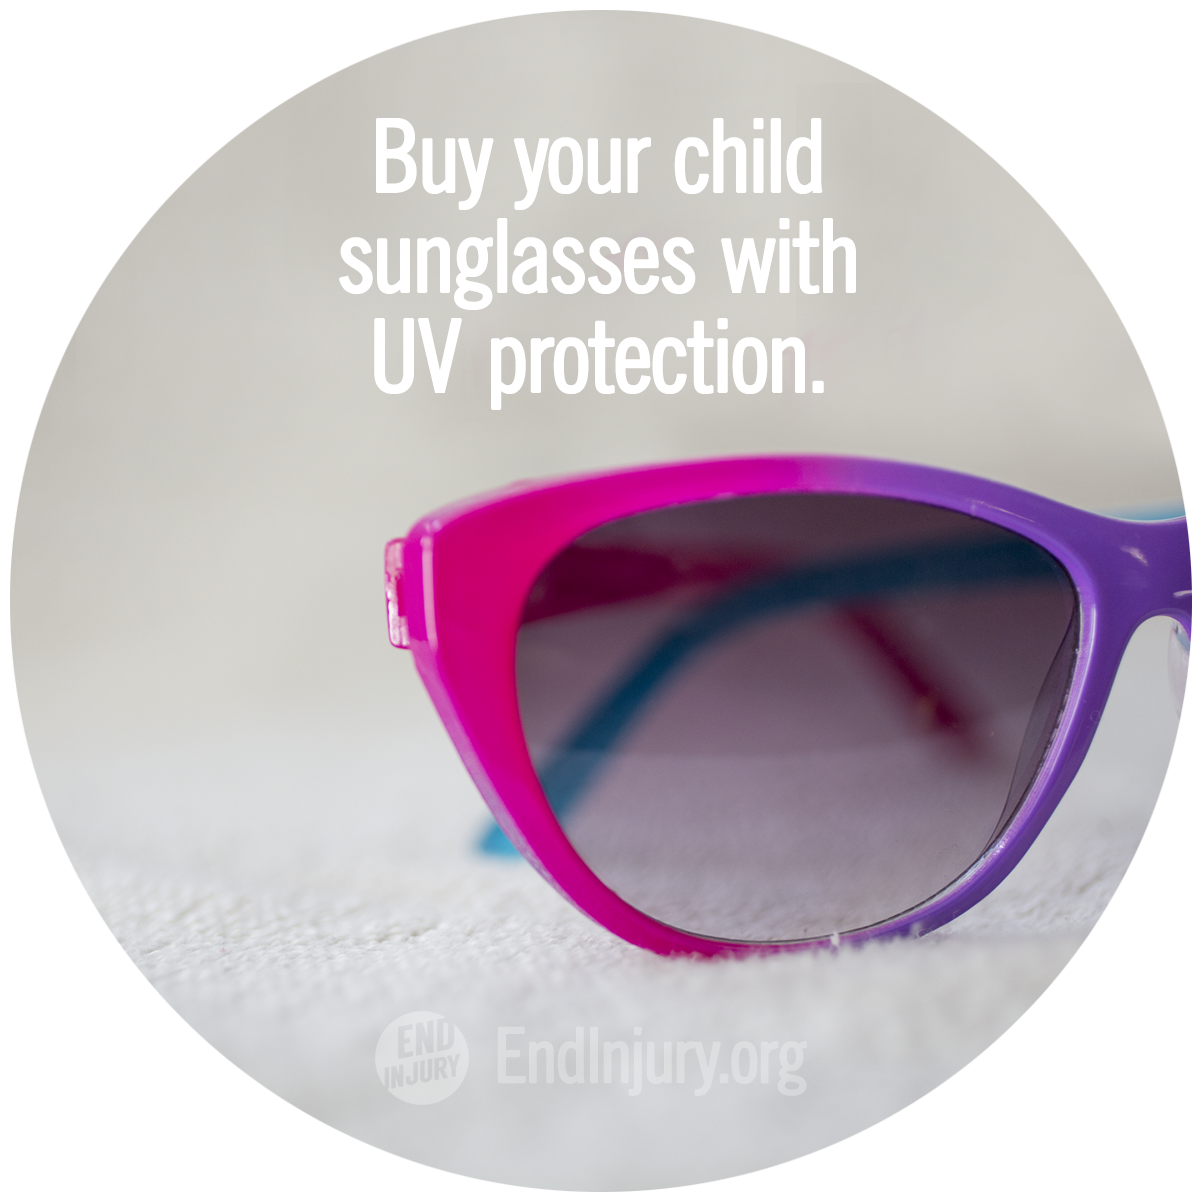 buy-uv-sunglasses-action.png